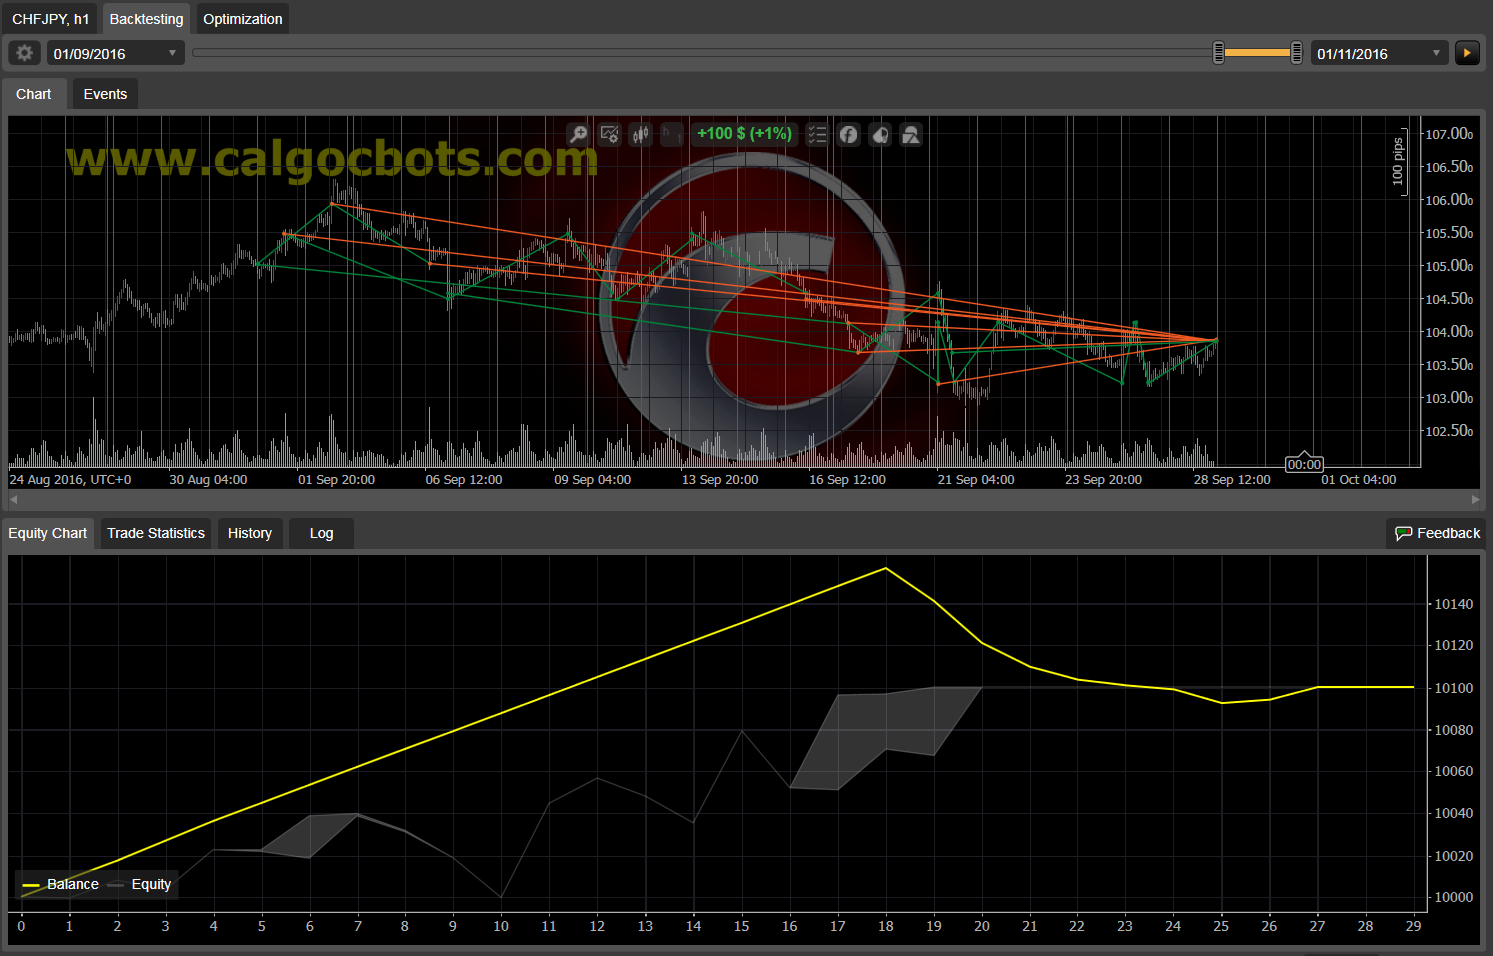 Dual Grid Hedge CHF JPY 1h cAlgo cBots cTrader 1k 100 45 90 - 14 a